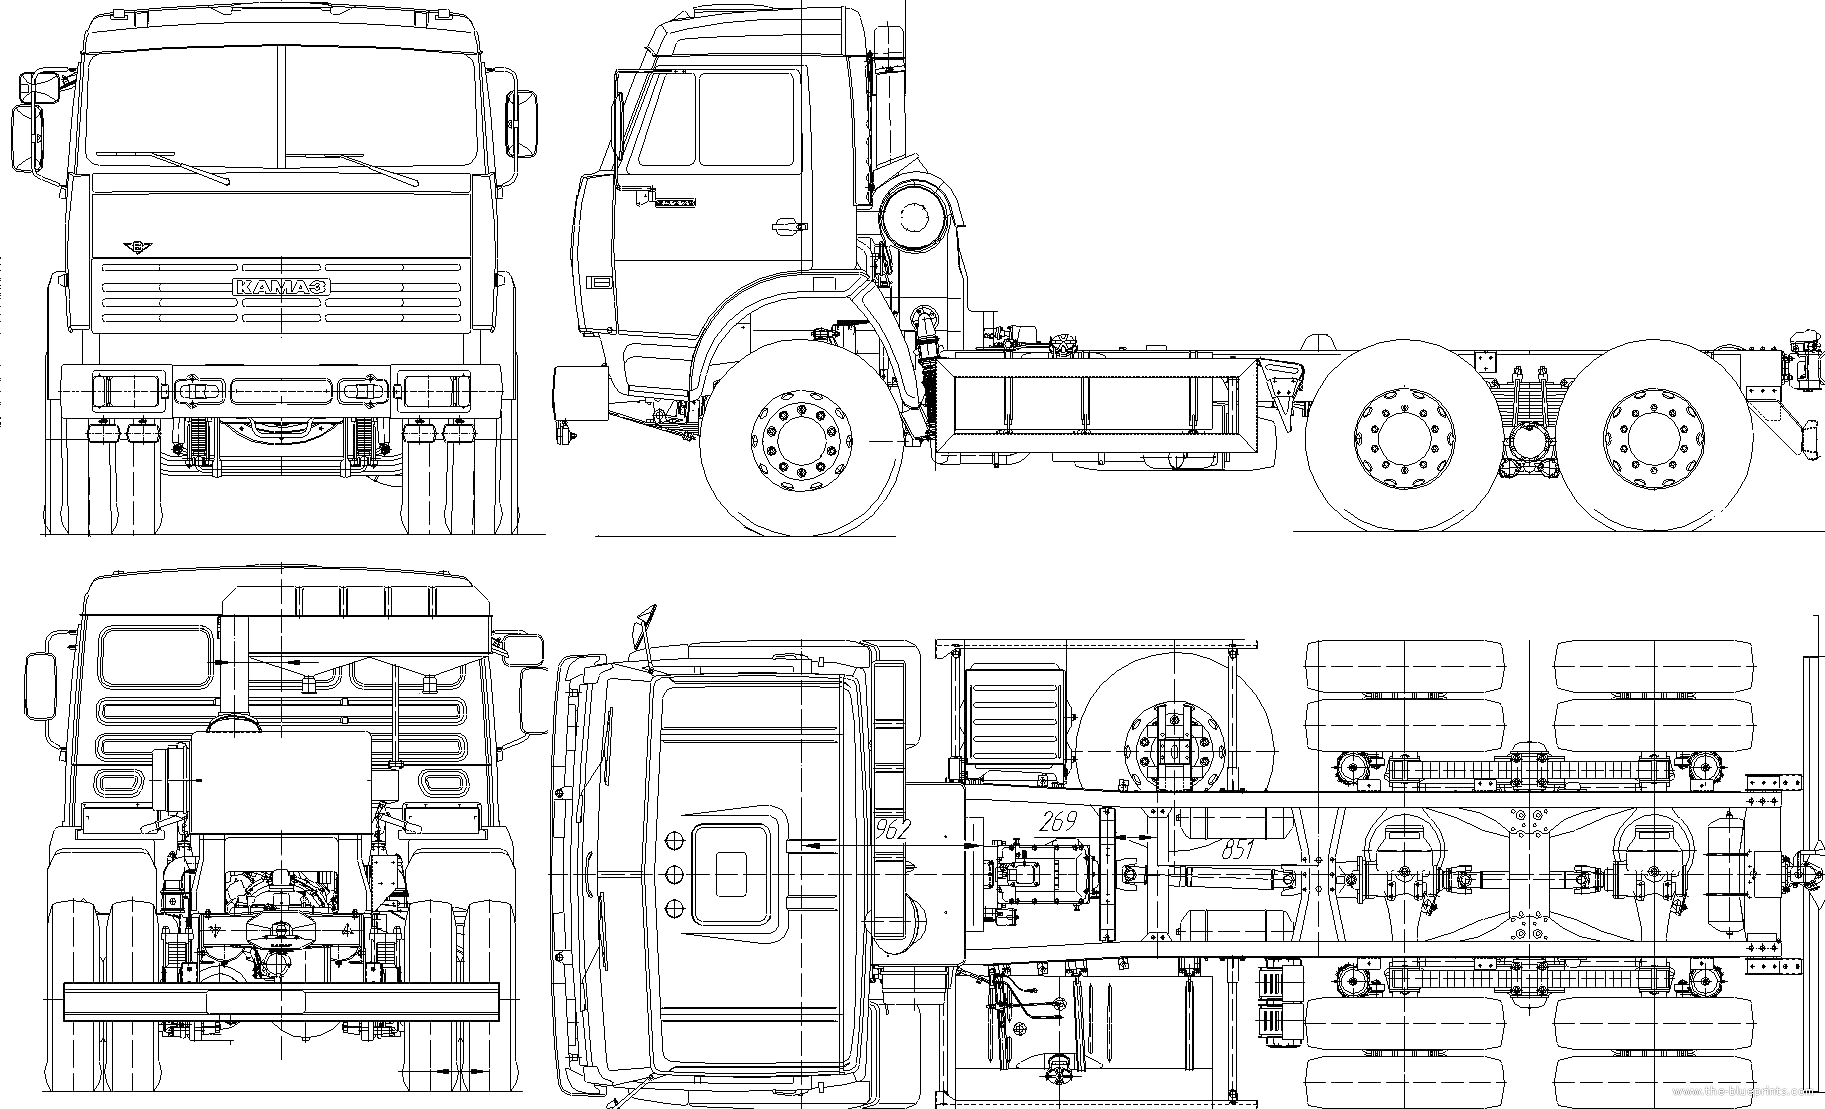 Truck blueprints 28 images car blueprints kamaz 53229 blueprints truck blueprints malvernweather Gallery